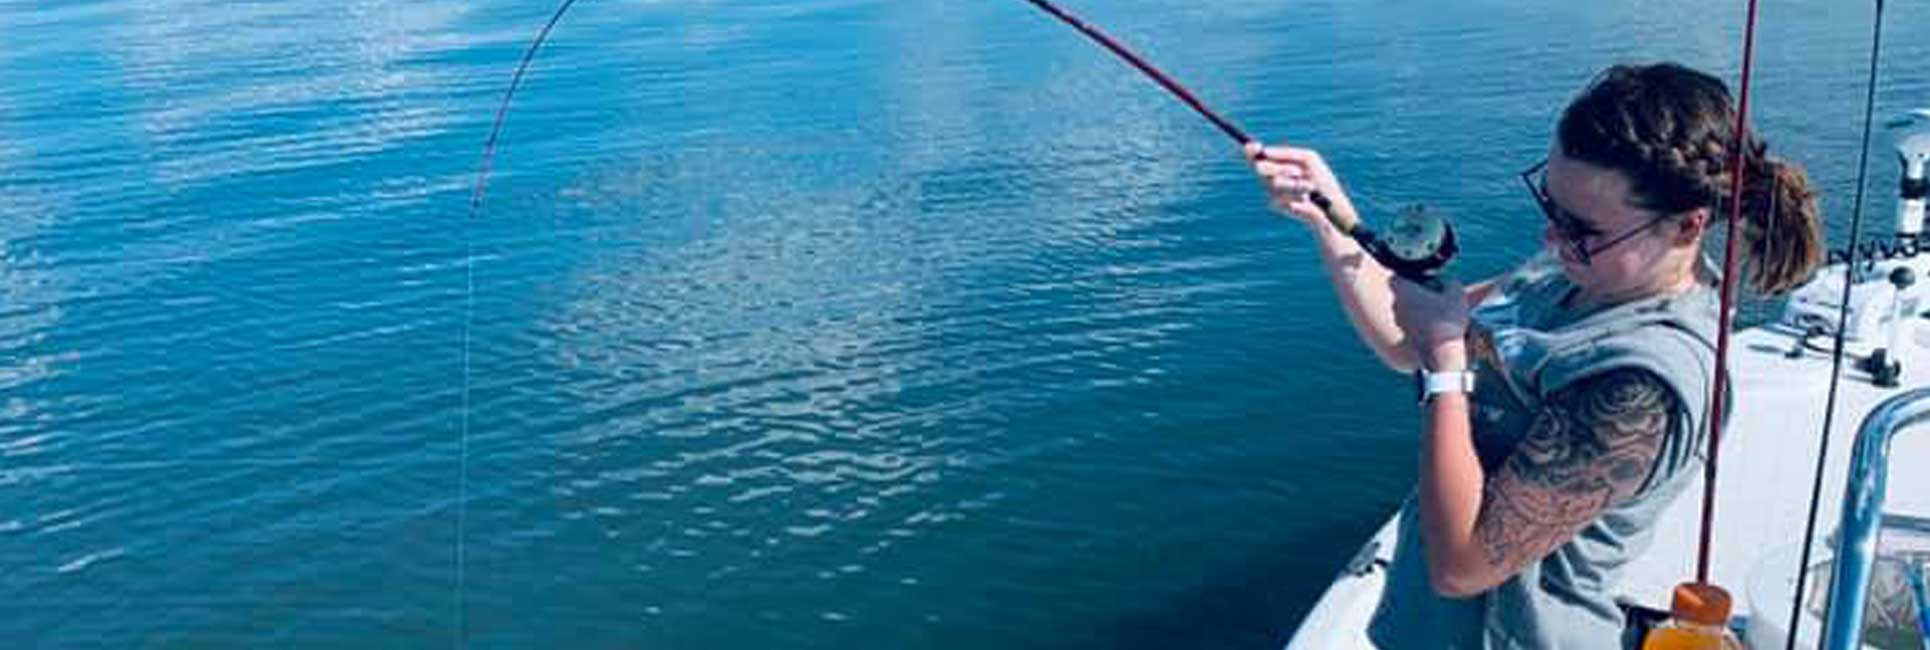 A women reeling in a fish with her rod bent on Lake Athens in Texas